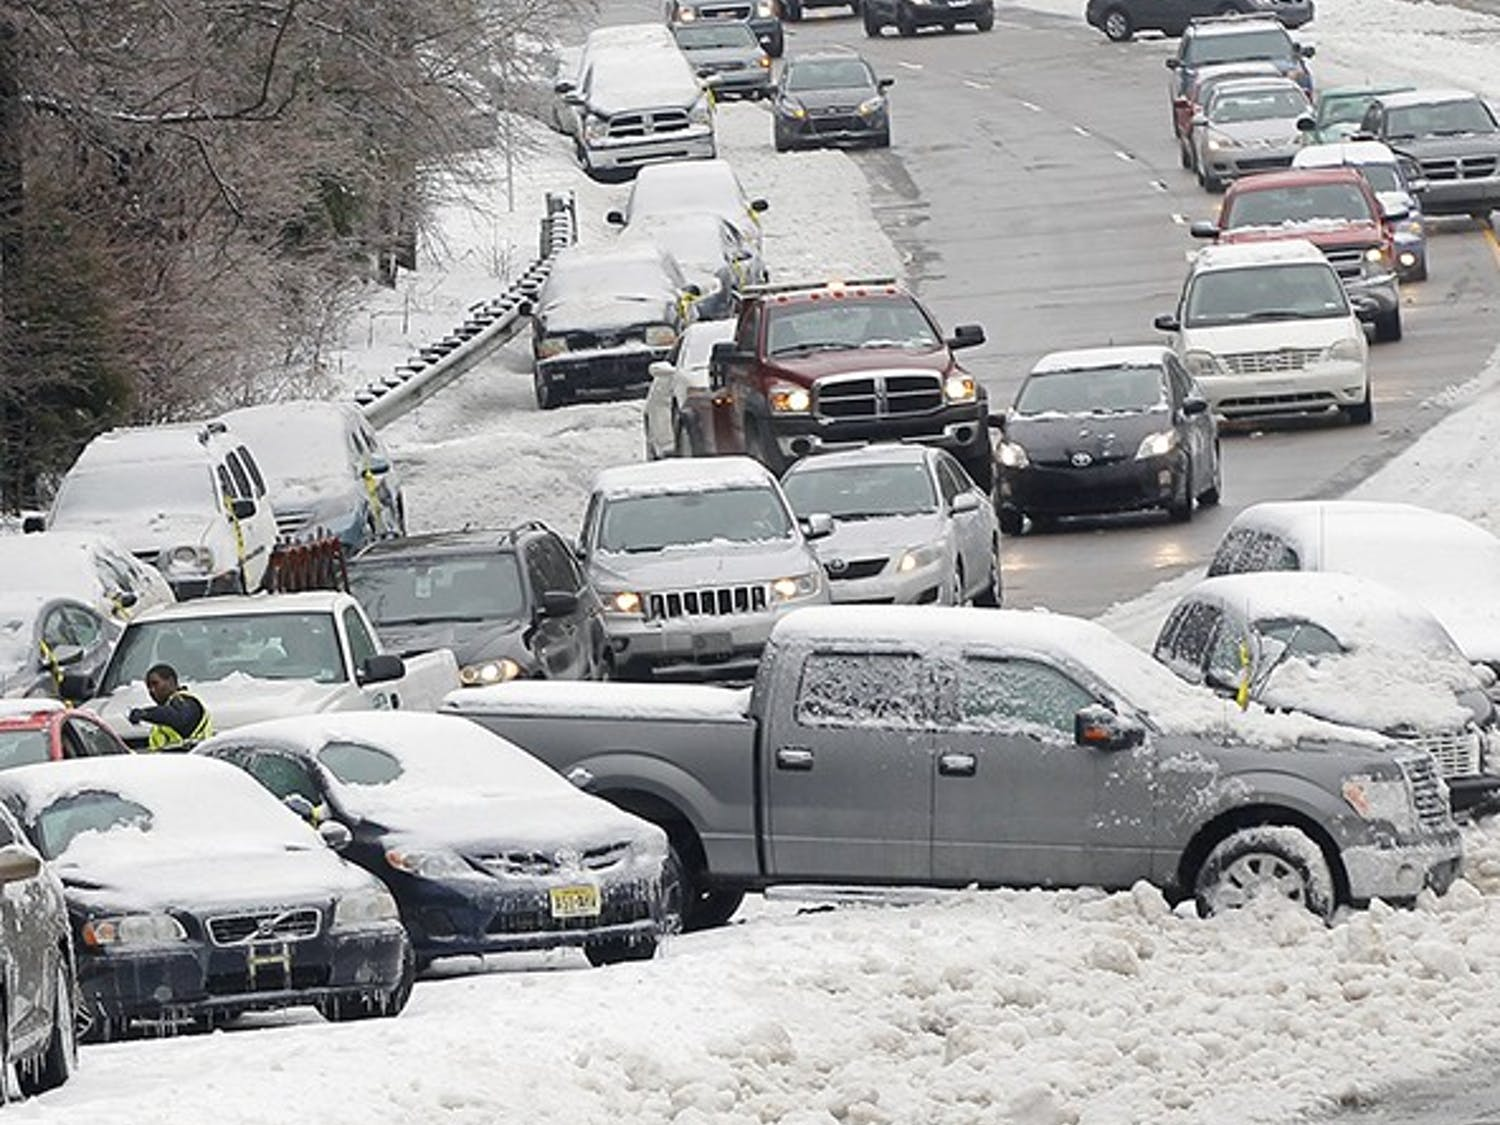 Police and wrecker crews work to remove dozens of vehicles that were either parked or abandoned on Glenwood Ave. just west of Crabtree Valley Mall in Raleigh, N.C., on Thursday, Feb. 13, 2014. (Chris Seward/Raleigh News & Observer/MCT)